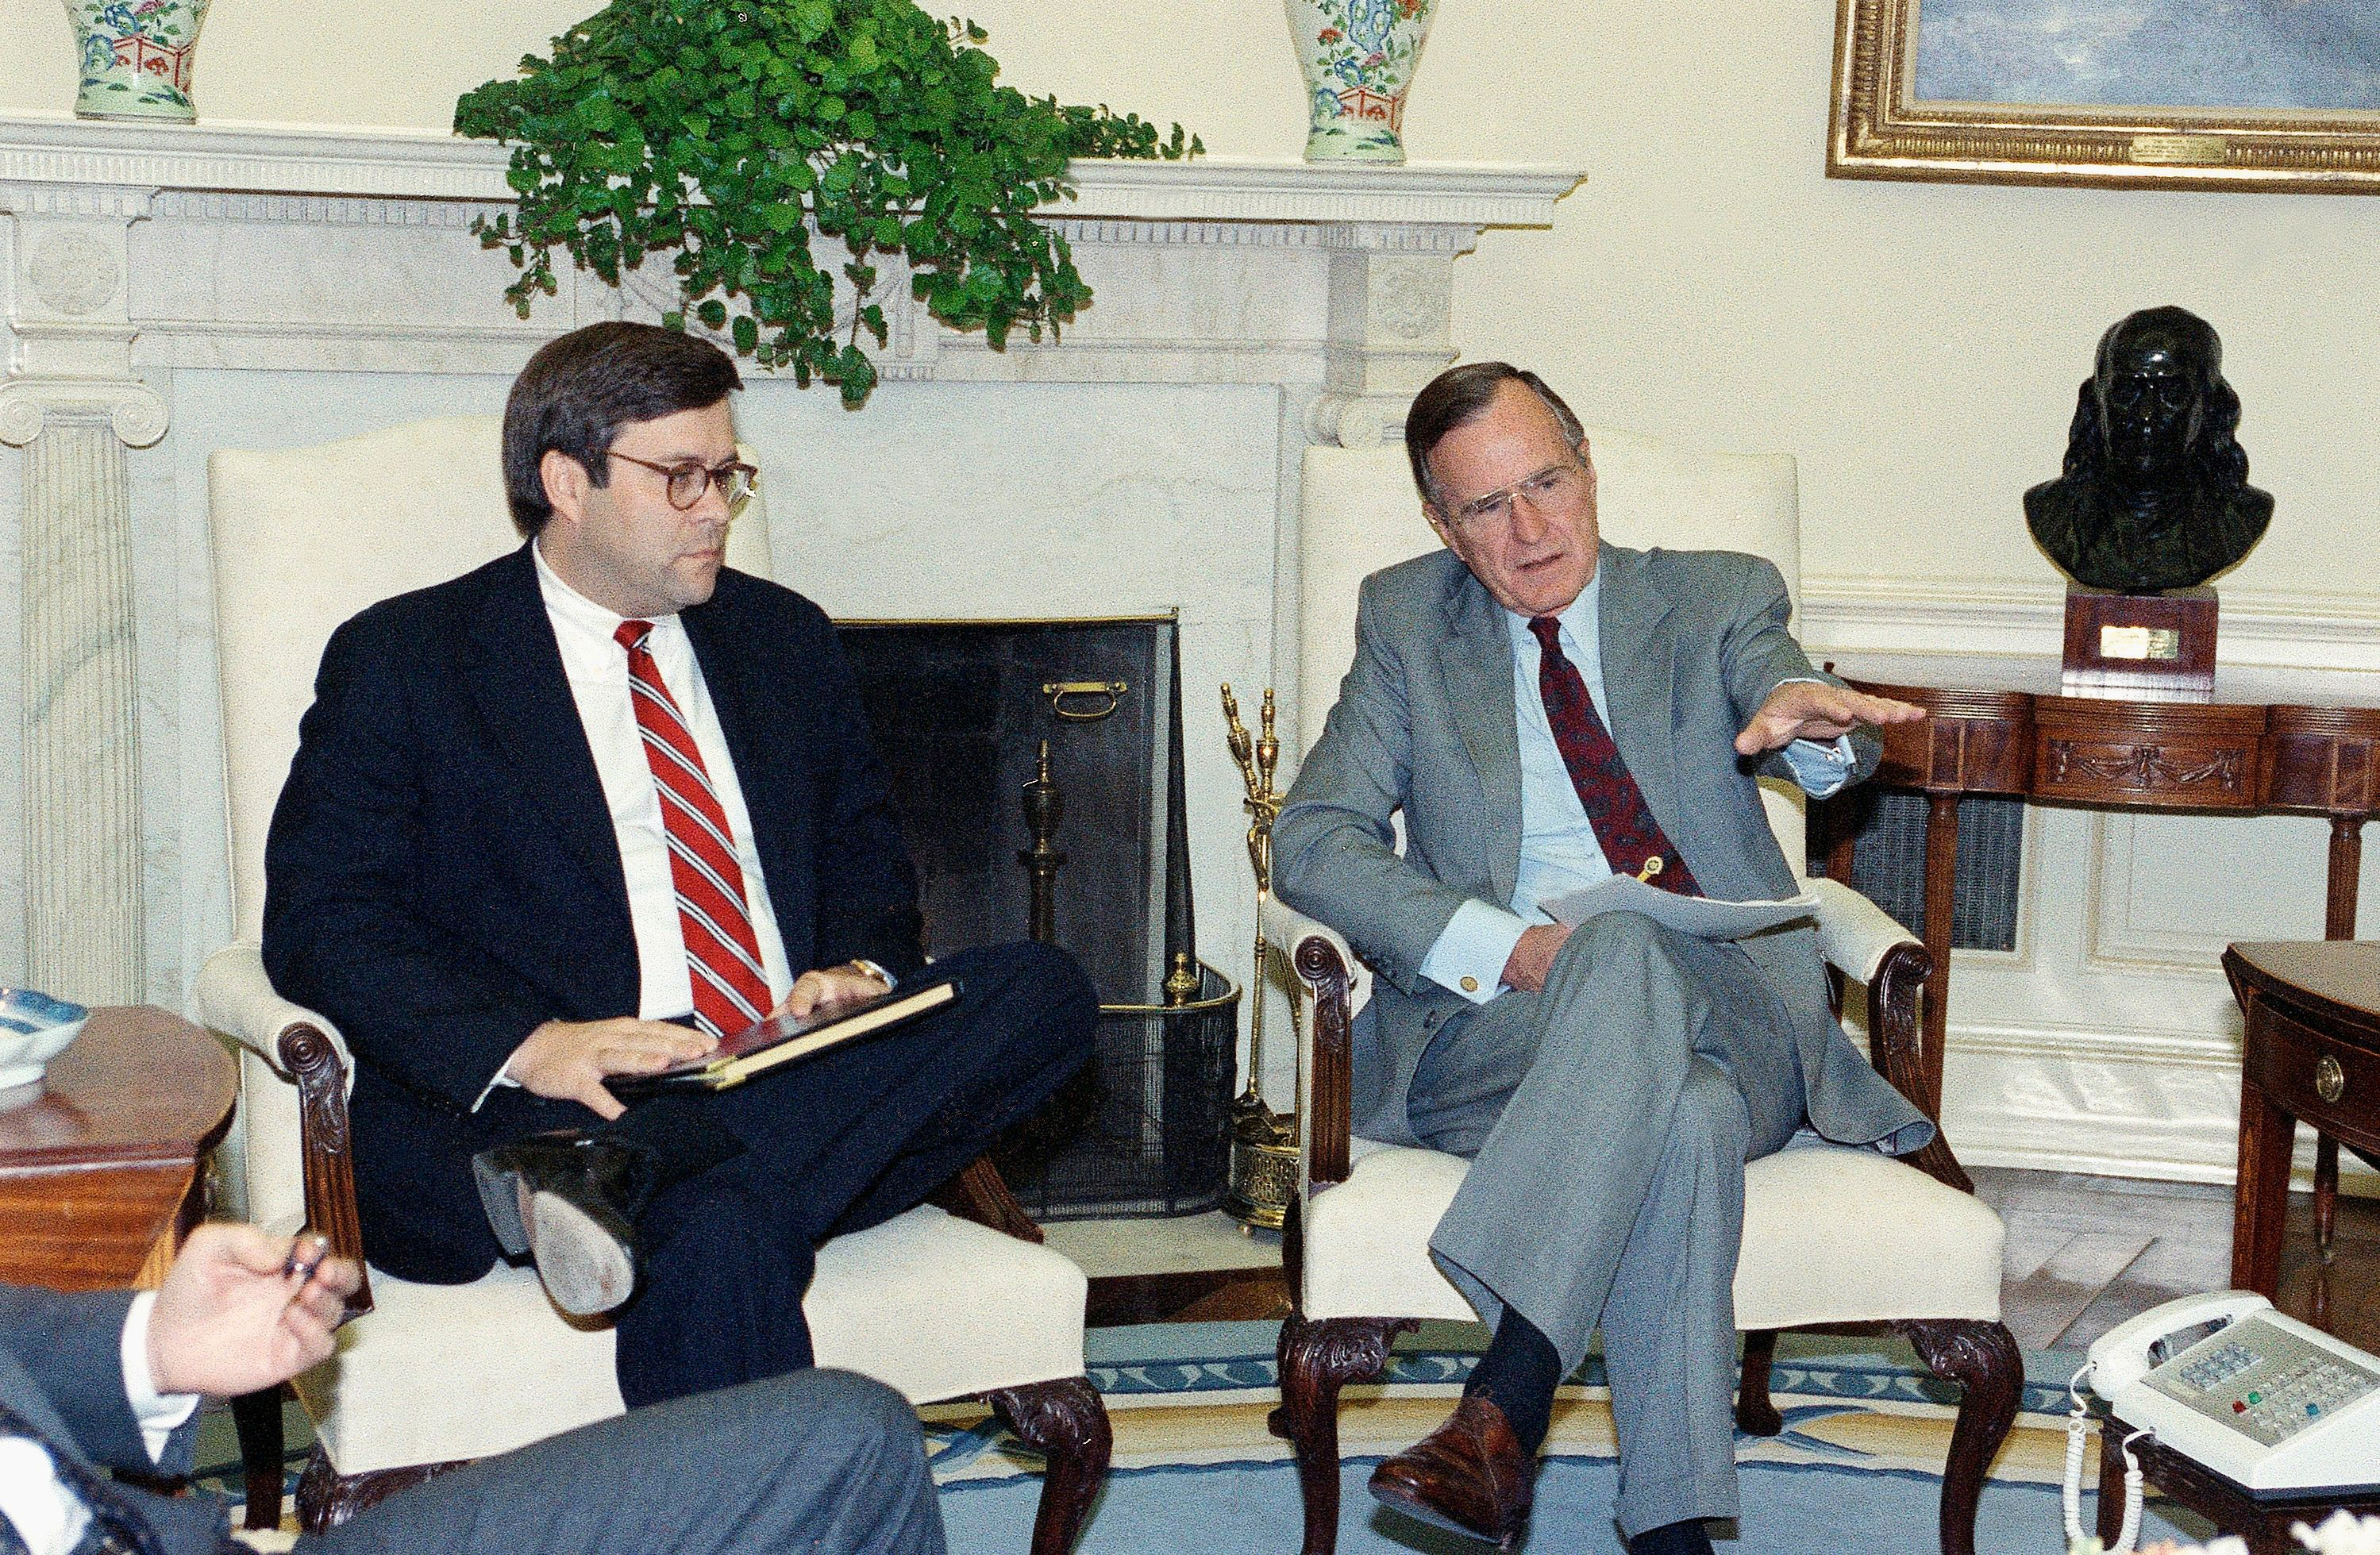 William Barr, left, is seen in 1992 with President George H.W. Bush when Barr was serving as U.S. attorney general.